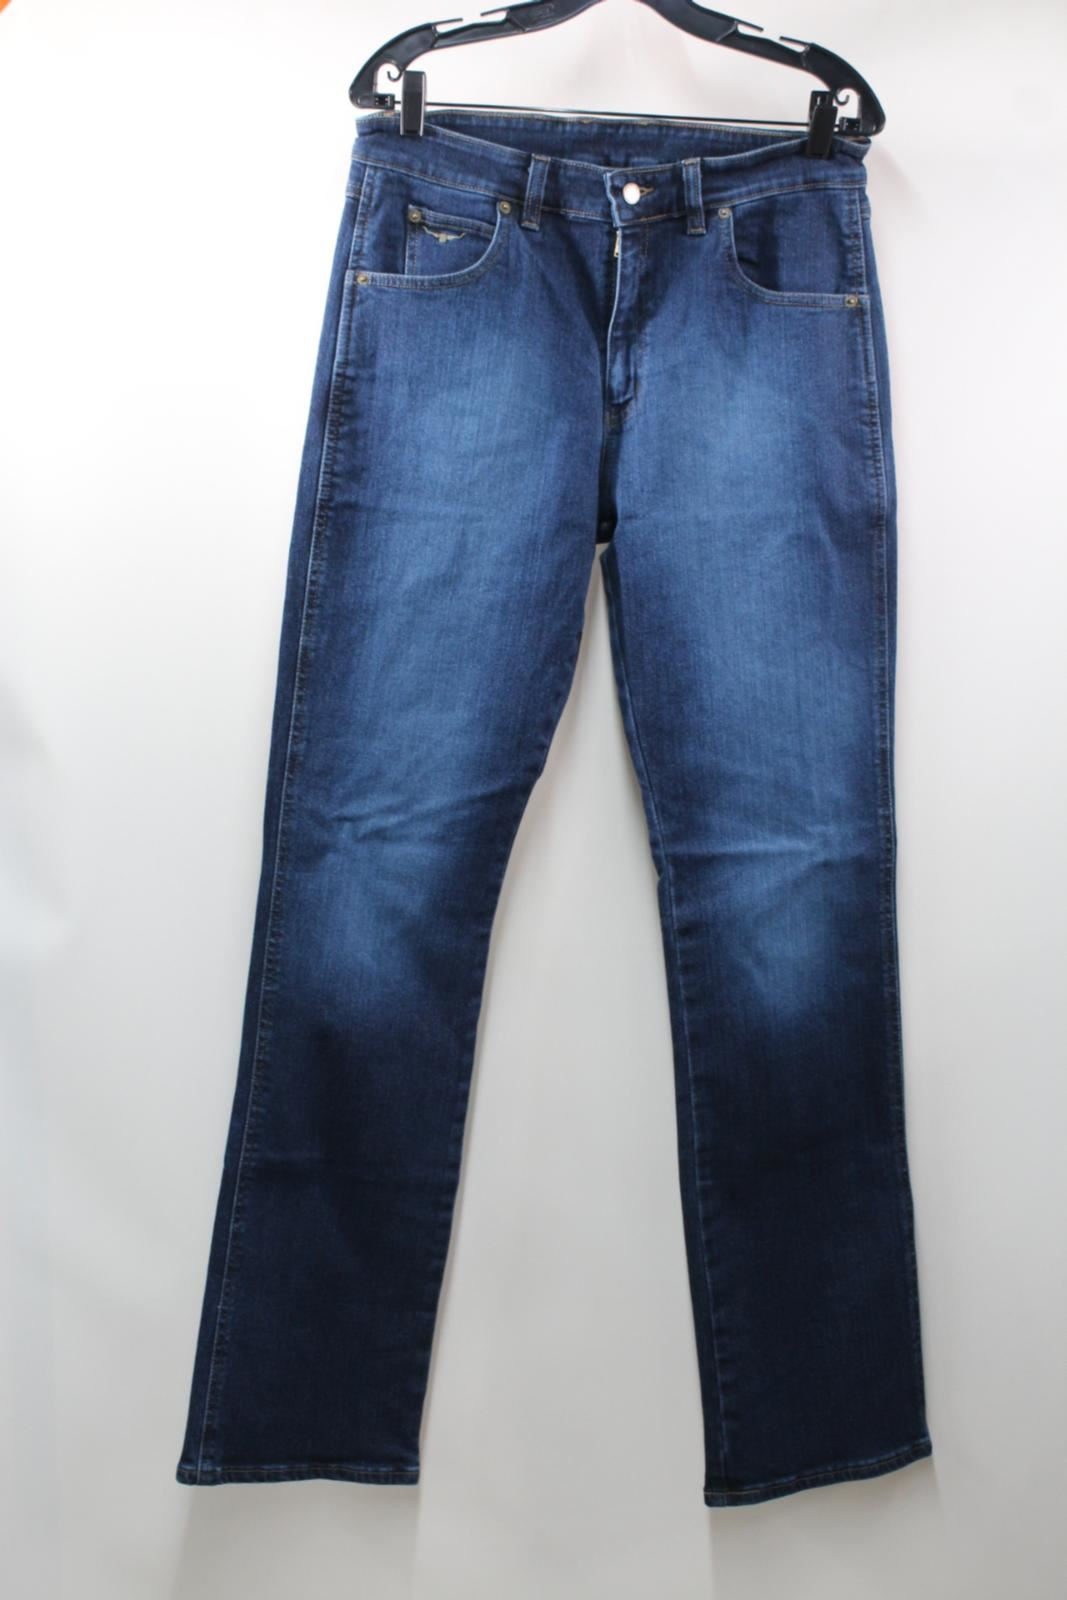 BNWT R.M. WILLIAMS Men's Blau Denim Straight Leg Low Rise Linesman Jeans 34L W32